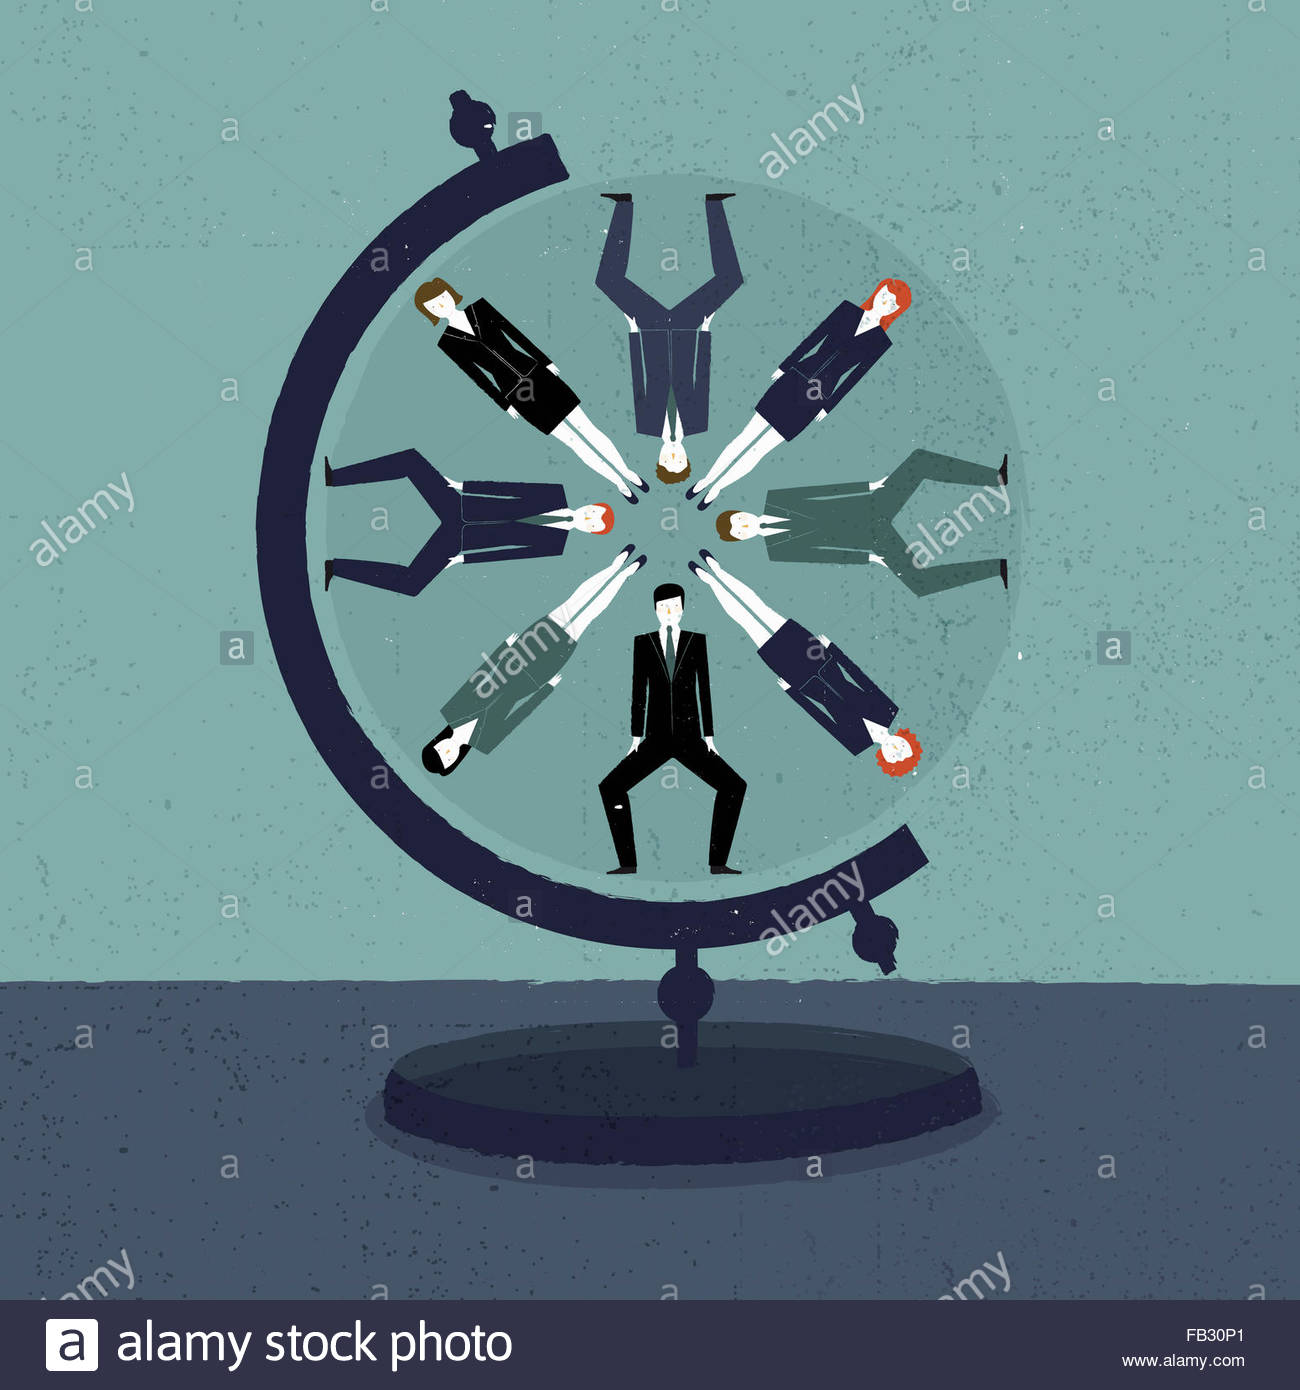 Businessmen and businesswomen in circle pattern on globe - Stock Image